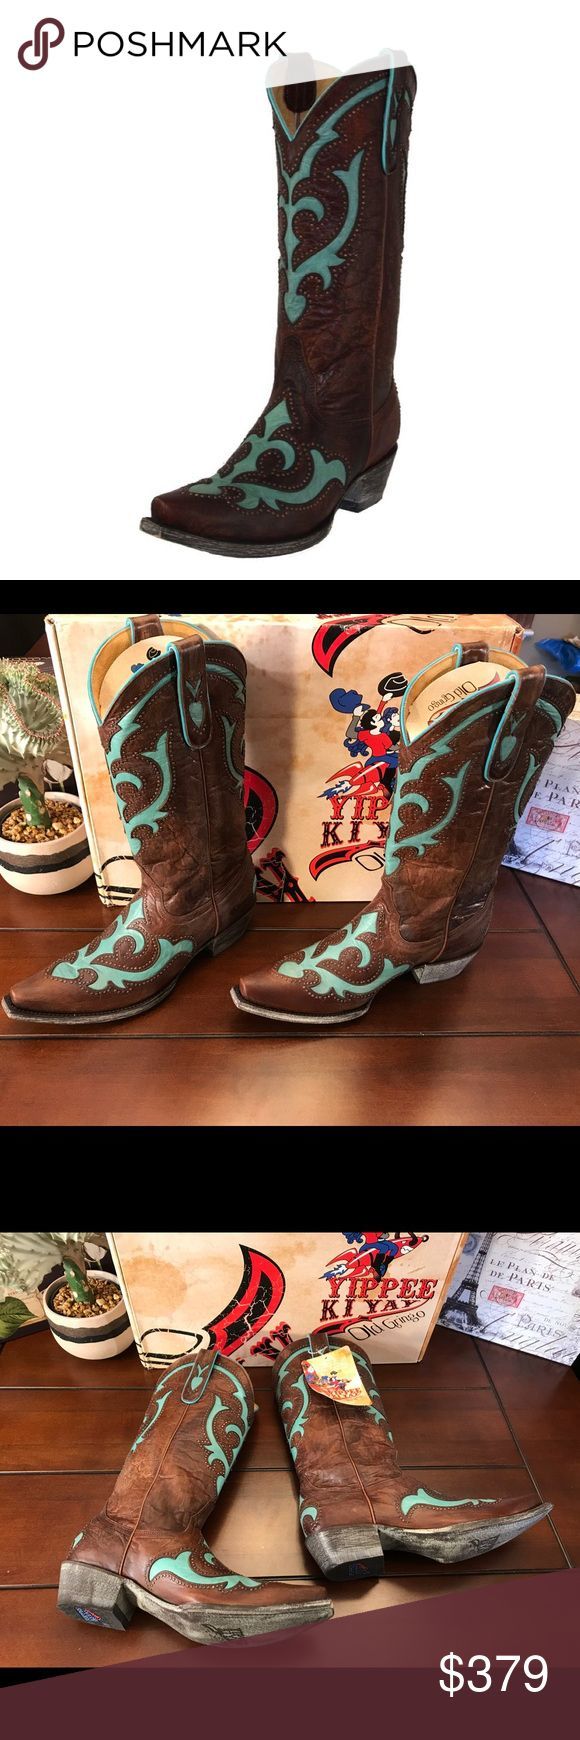 Old Gringo Yippee Ki Yay Kailani Boots, 8.5 Old Gringo Yippee Ki Yay Kailani Stud Cowboy Boots, Size 8.5   I do not trade.   These are stunning and brand new with tag and box! ☺️The colors are dark brown and turquoise. I wear an 8.5 and the fit is true, with room for thick socks. Great gift idea! 🎁  Shaft Height- 12 inches Heel- 1.5 inches Circumference-Approximately 12 inches at the widest point Old Gringo Shoes Heeled Boots